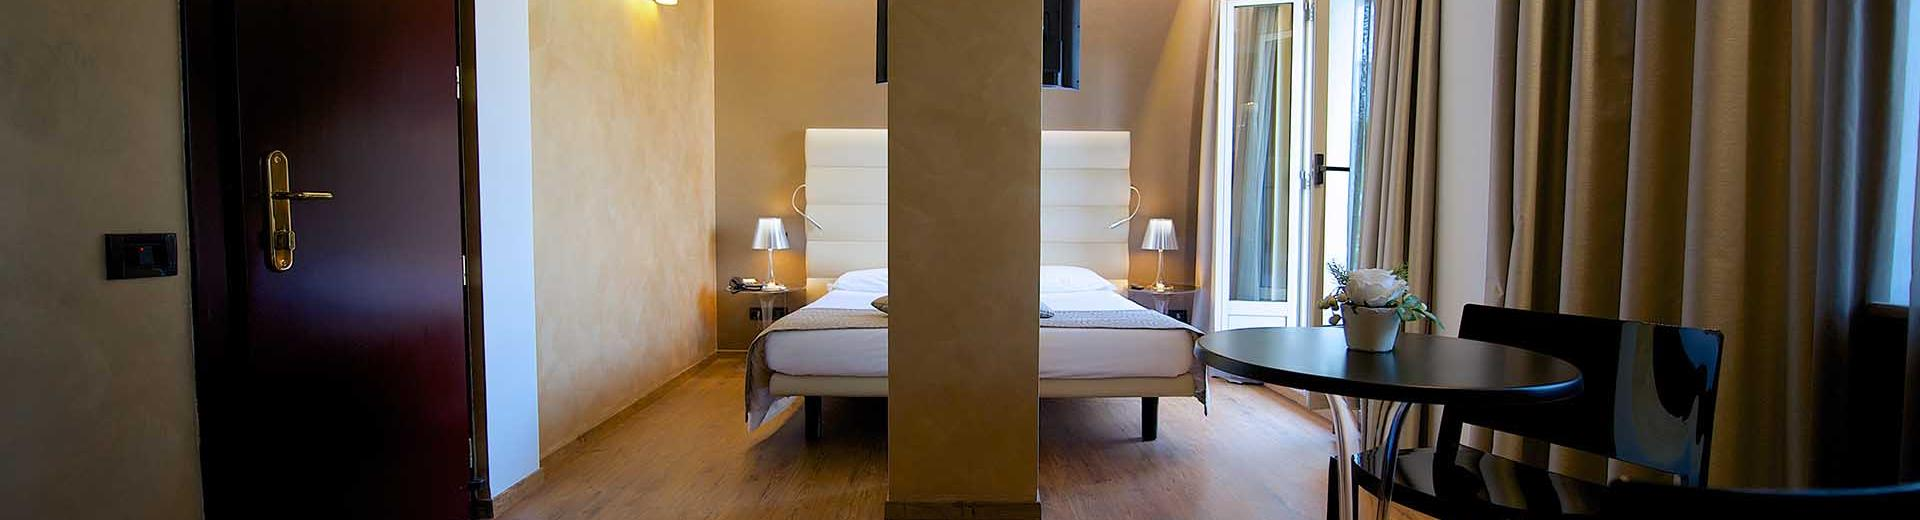 Elegance in the superior rooms of the best Western Hotel Luxor 3 star hotel in Turin